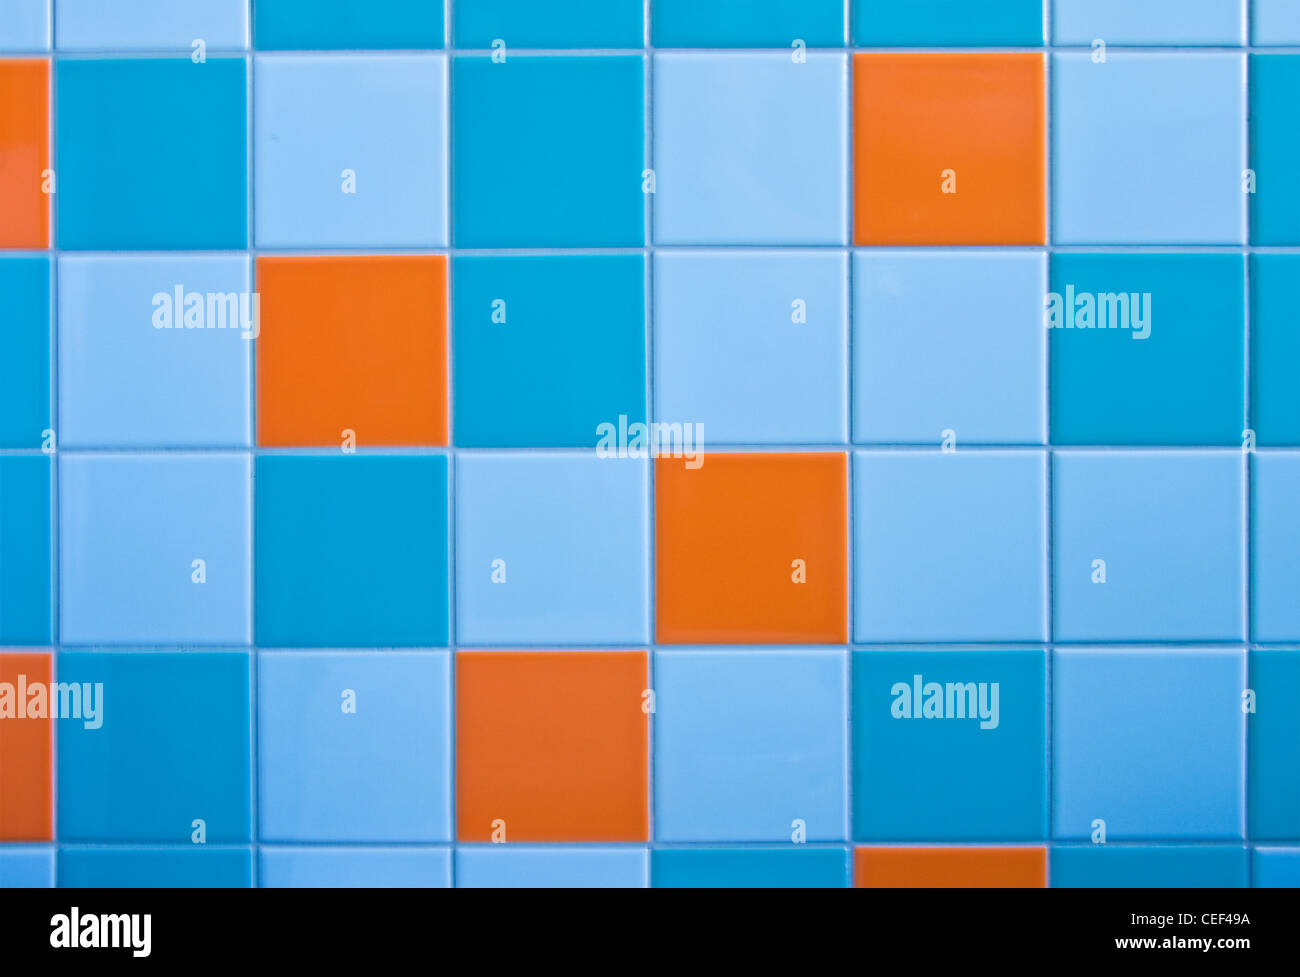 Part of wall in modern bathroom with tiles in light blue, azure blue and orange - Stock Image